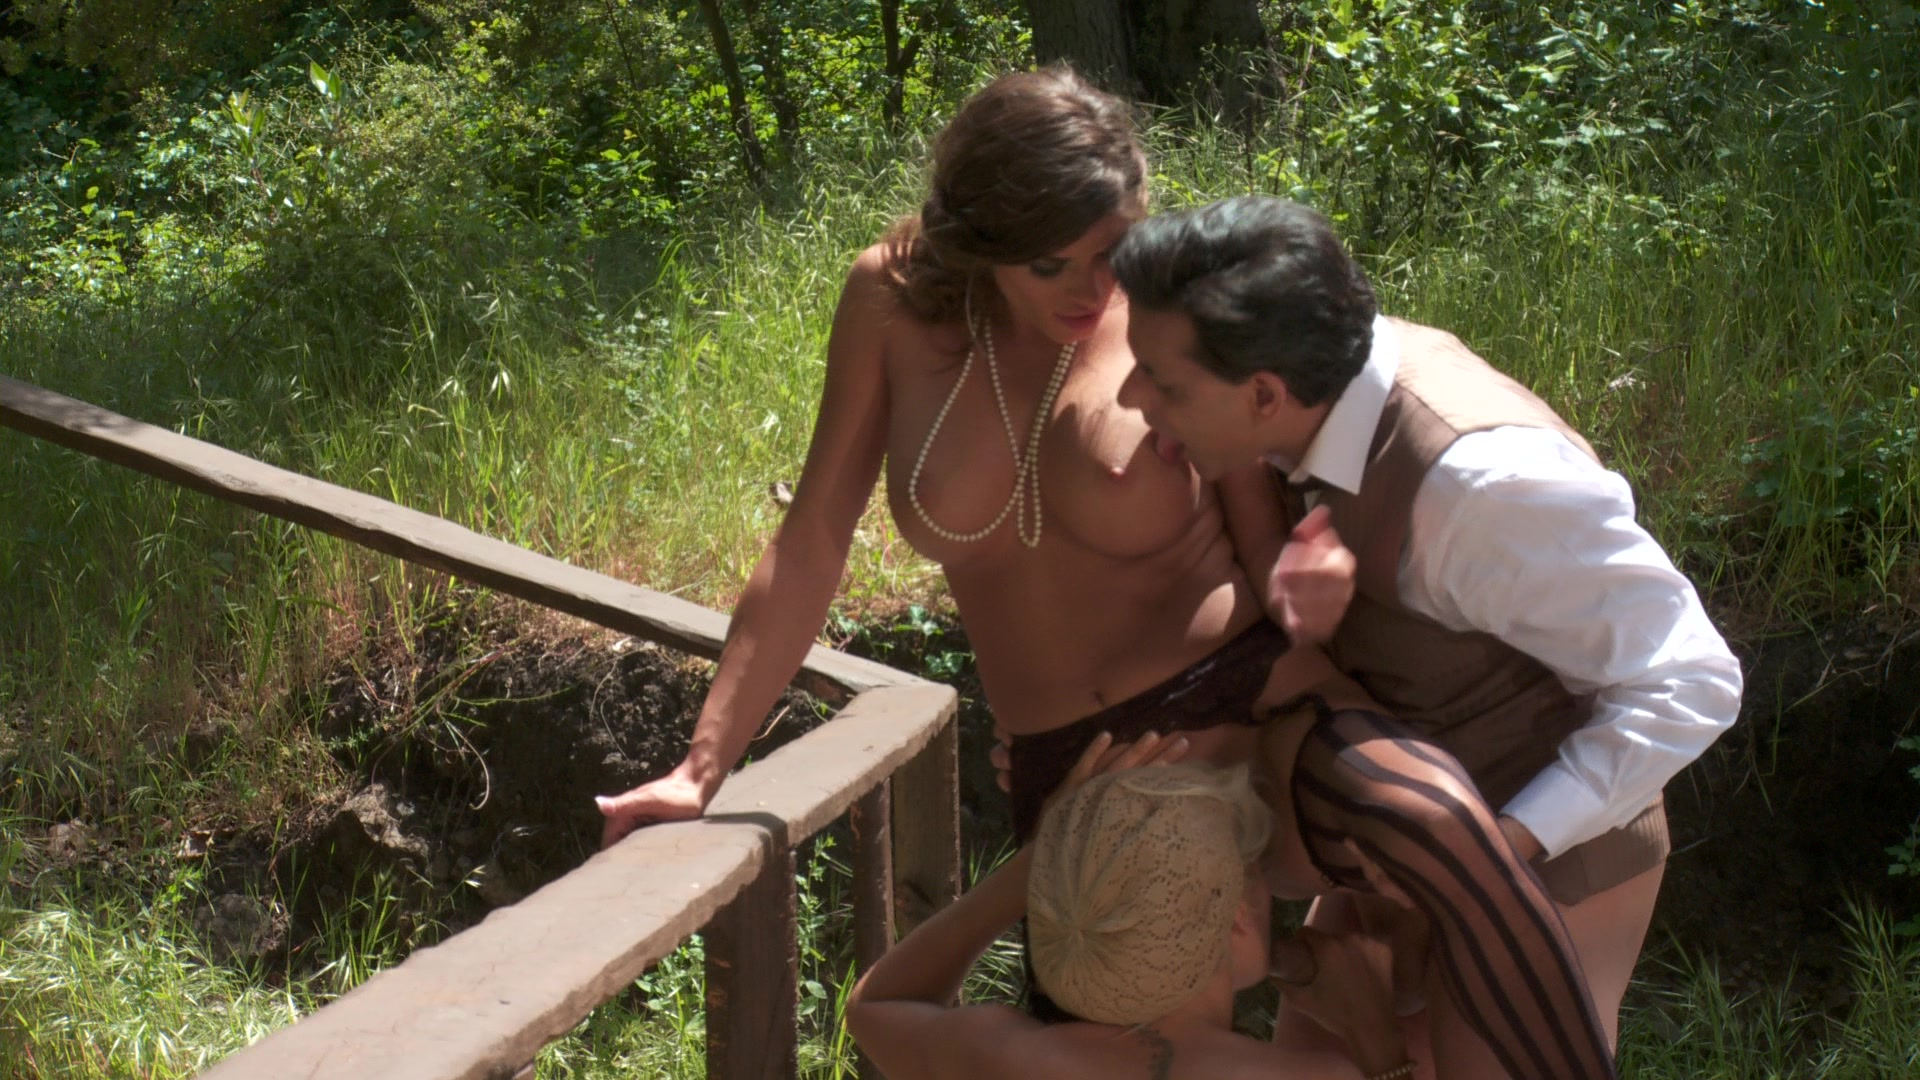 Hahtdahg! perfect:))) bonnie and clyde 2 porno